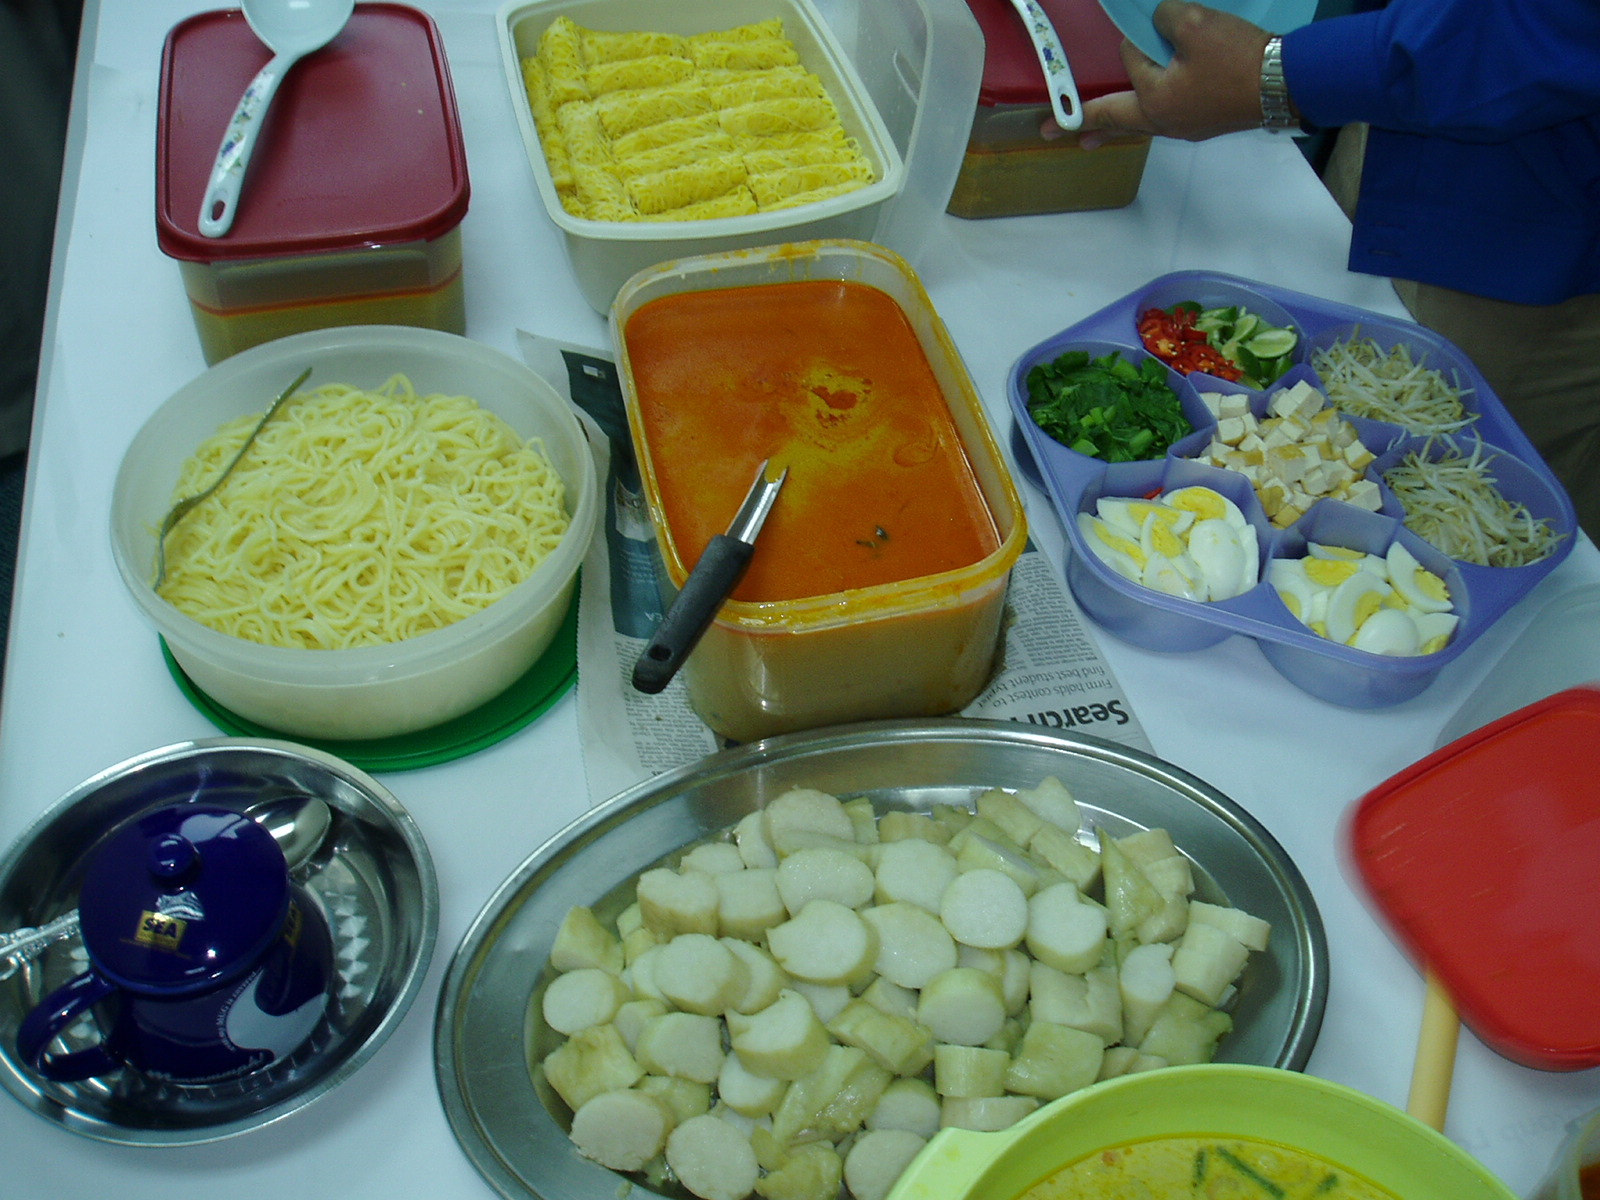 All about malaysia potluck in malaysia brunch family food friends hungry laksa malaysian potluck nasi forumfinder Choice Image